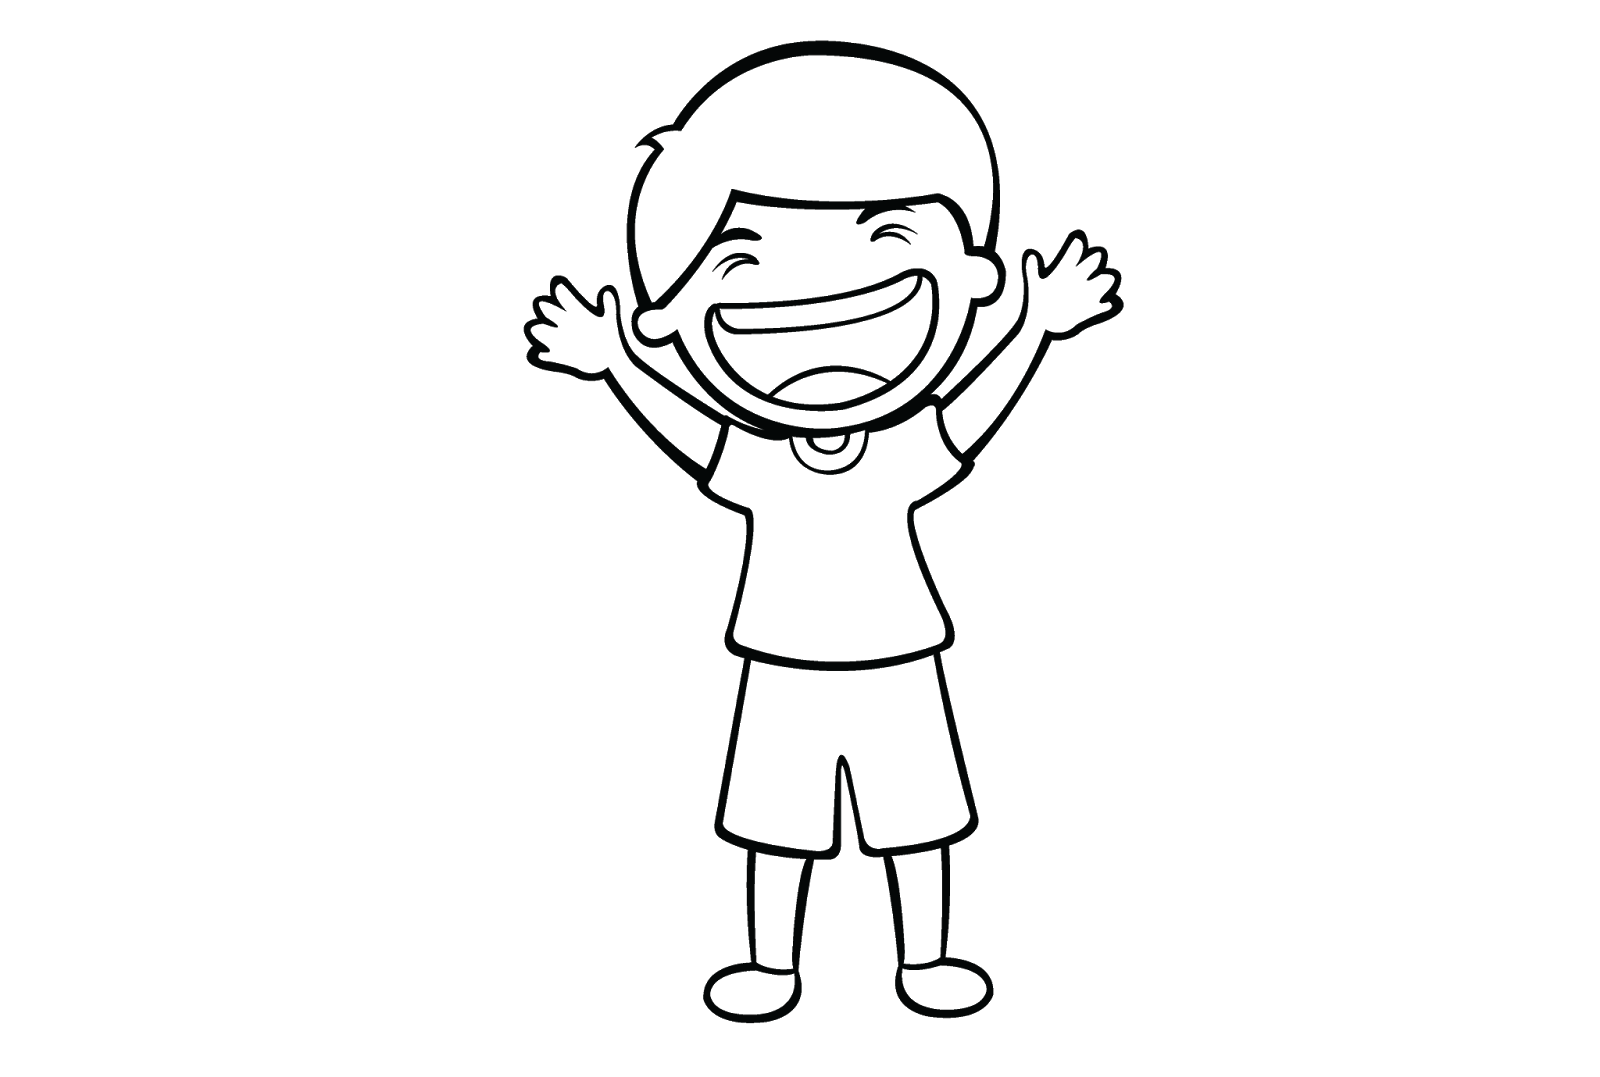 Laughing clipart kids, Laughing kids Transparent FREE for ...